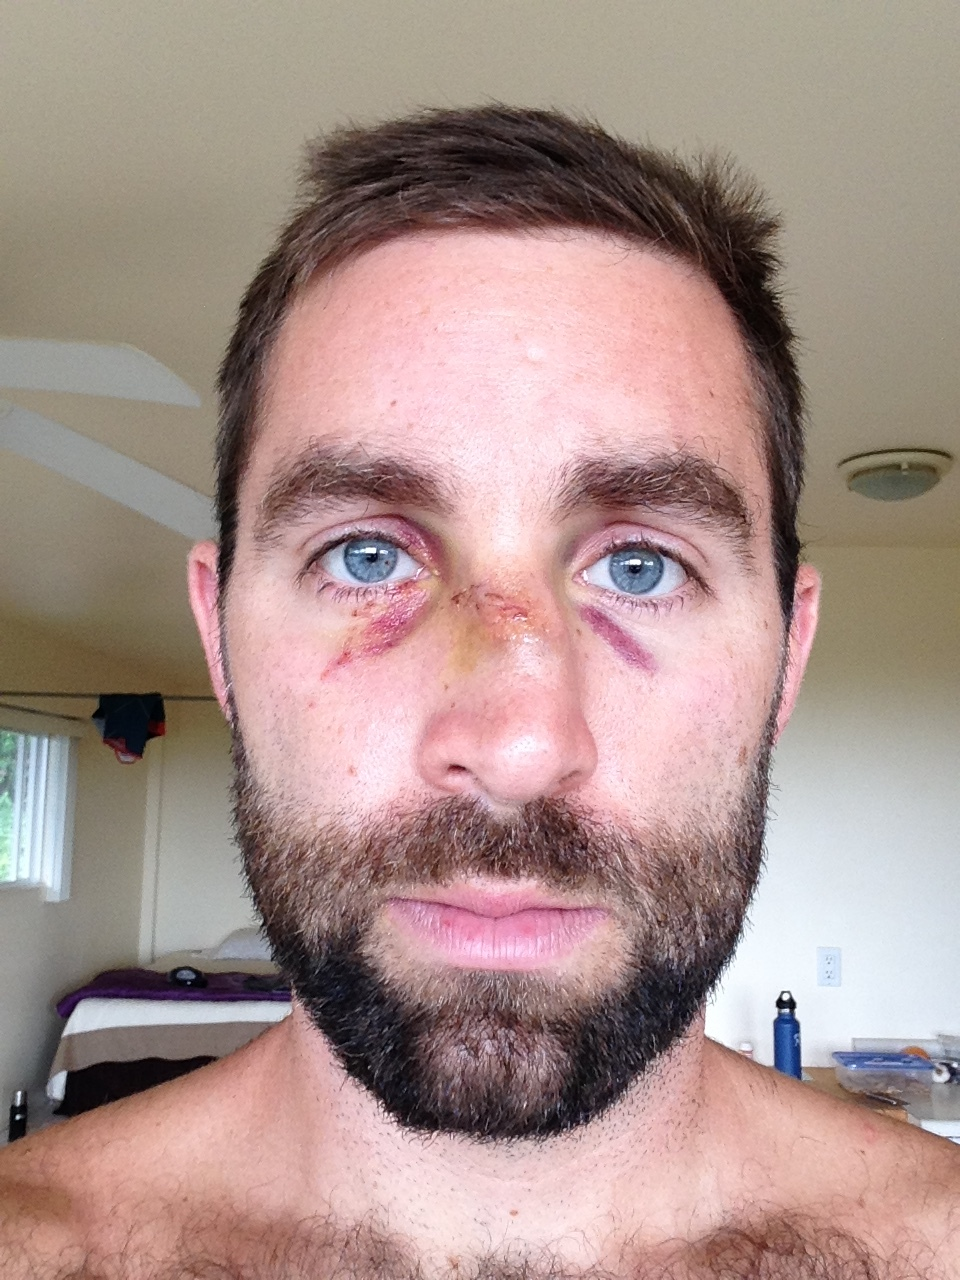 My broken nose from paddling on Maui